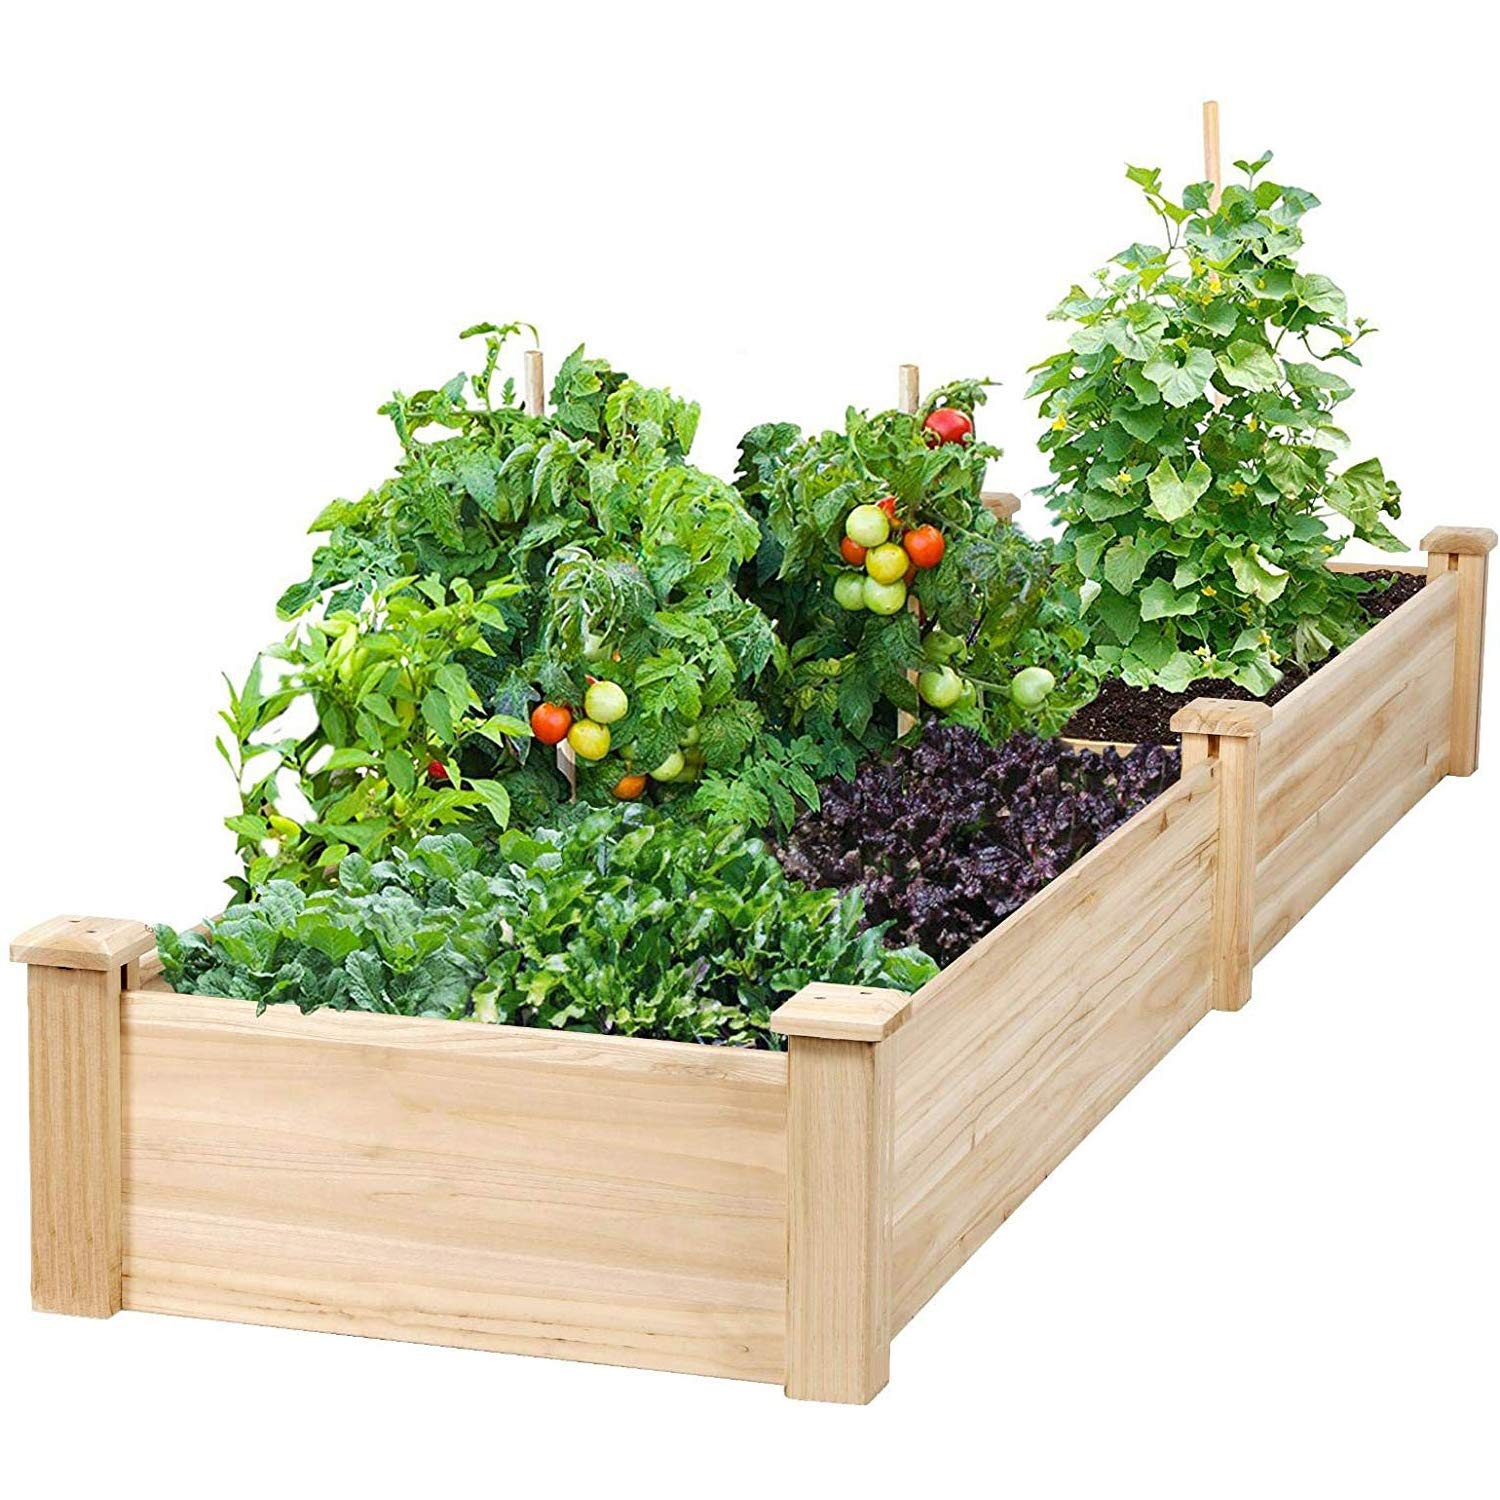 Buy Incbruce 4ft Wooden Raised Garden Bed Planter No Bolt Assembly Elevated Flower Bed Boxes Kit For Vegetable Flower Herb Gardening Natural Online At Low Prices In India Amazon In